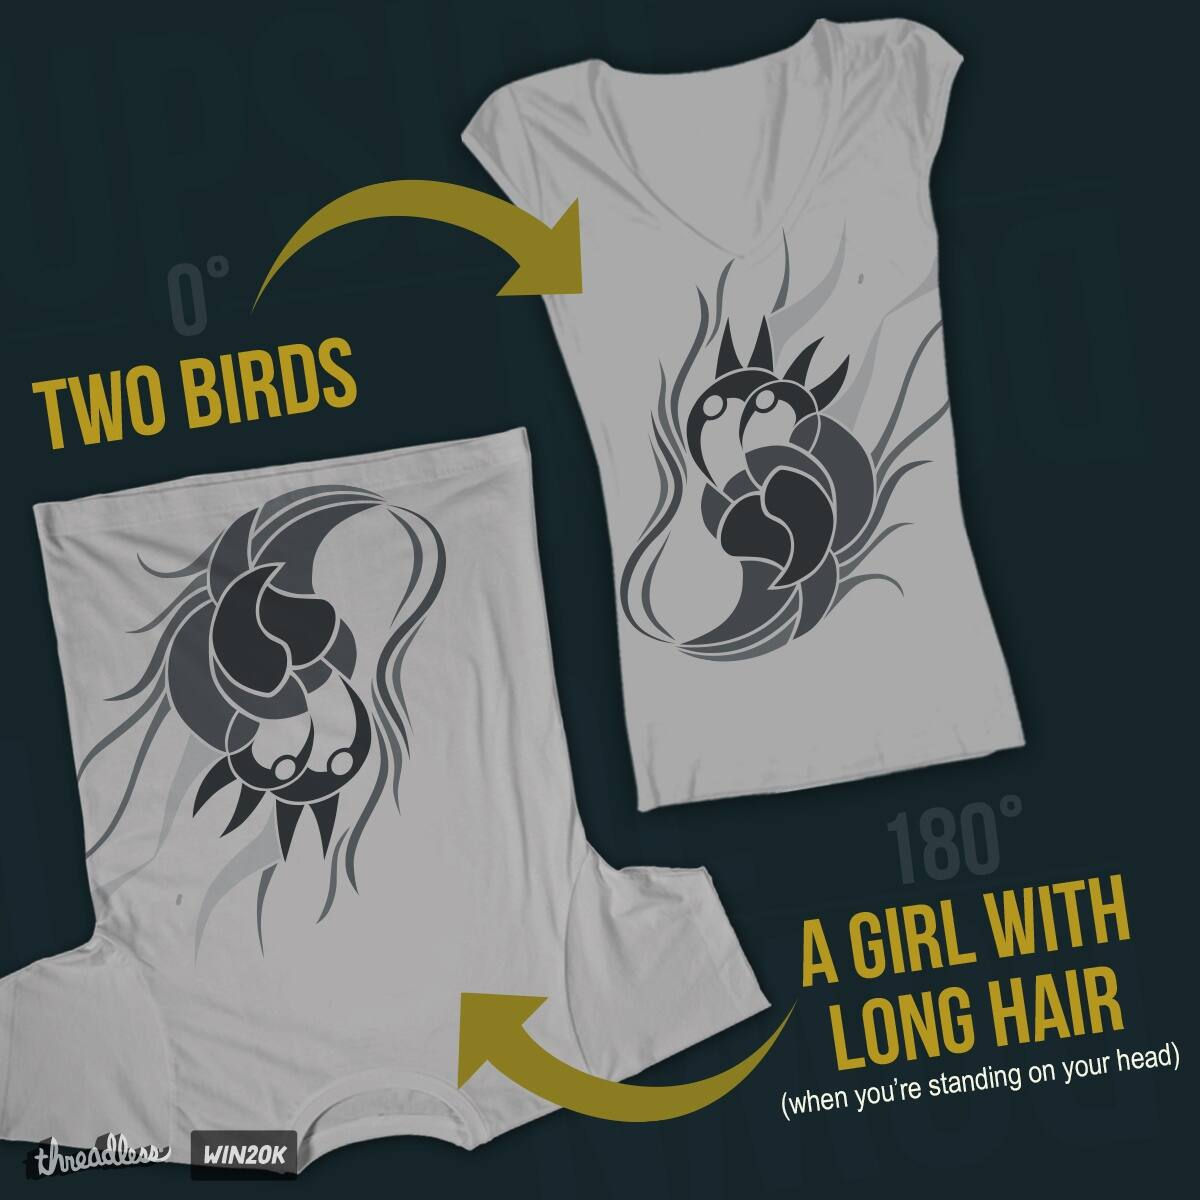 Check Out This Chick by IntestineArt on Threadless